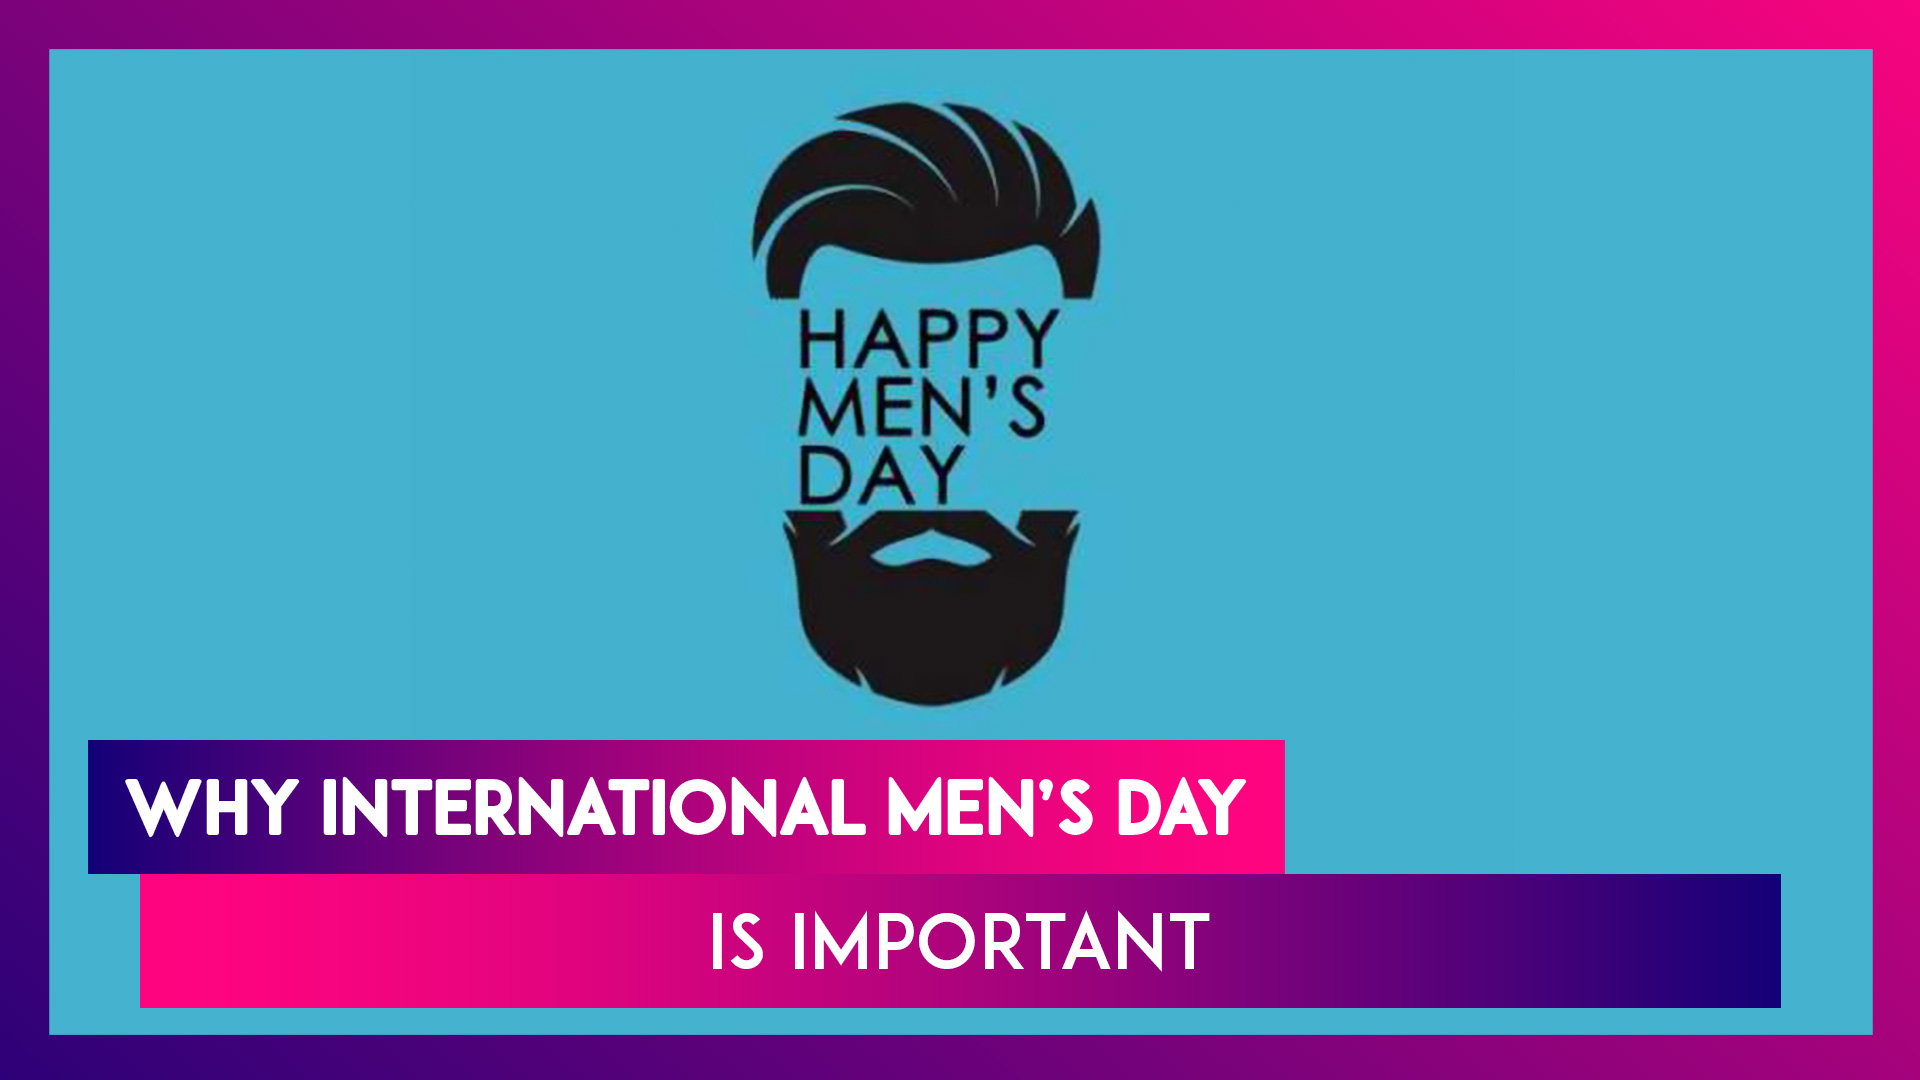 International Men's Day 2020: What Is It And Why Is It Celebrated